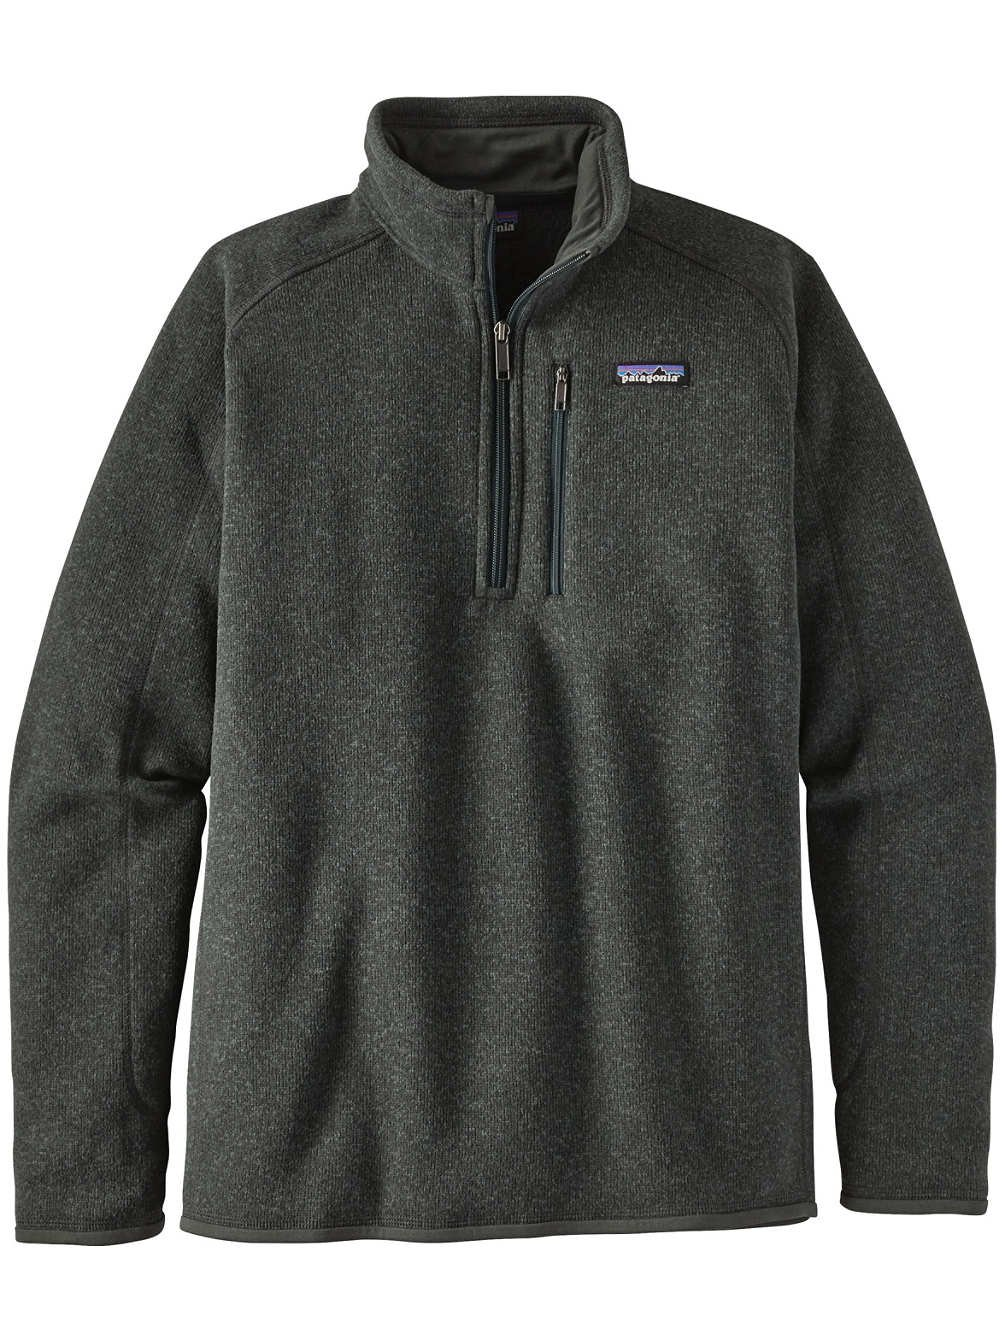 Patagonia Ms Better Sweater 1/4 Zip Casual Jacket Carbon Mens S by Patagonia